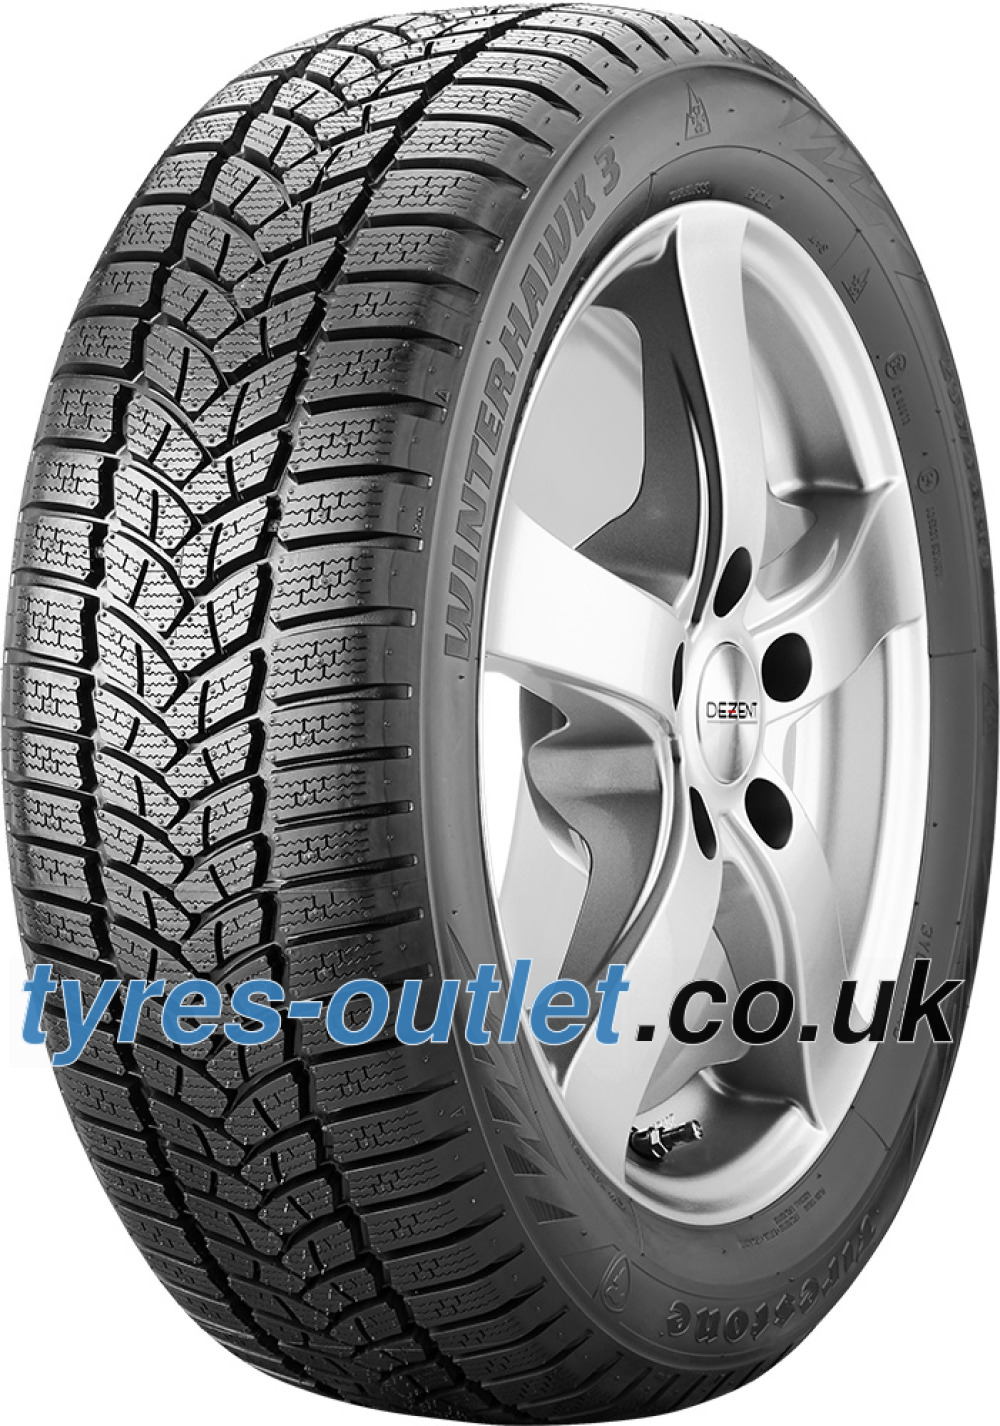 Firestone Winterhawk 3 ( 225/50 R17 98H XL , with rim protection (MFS) )